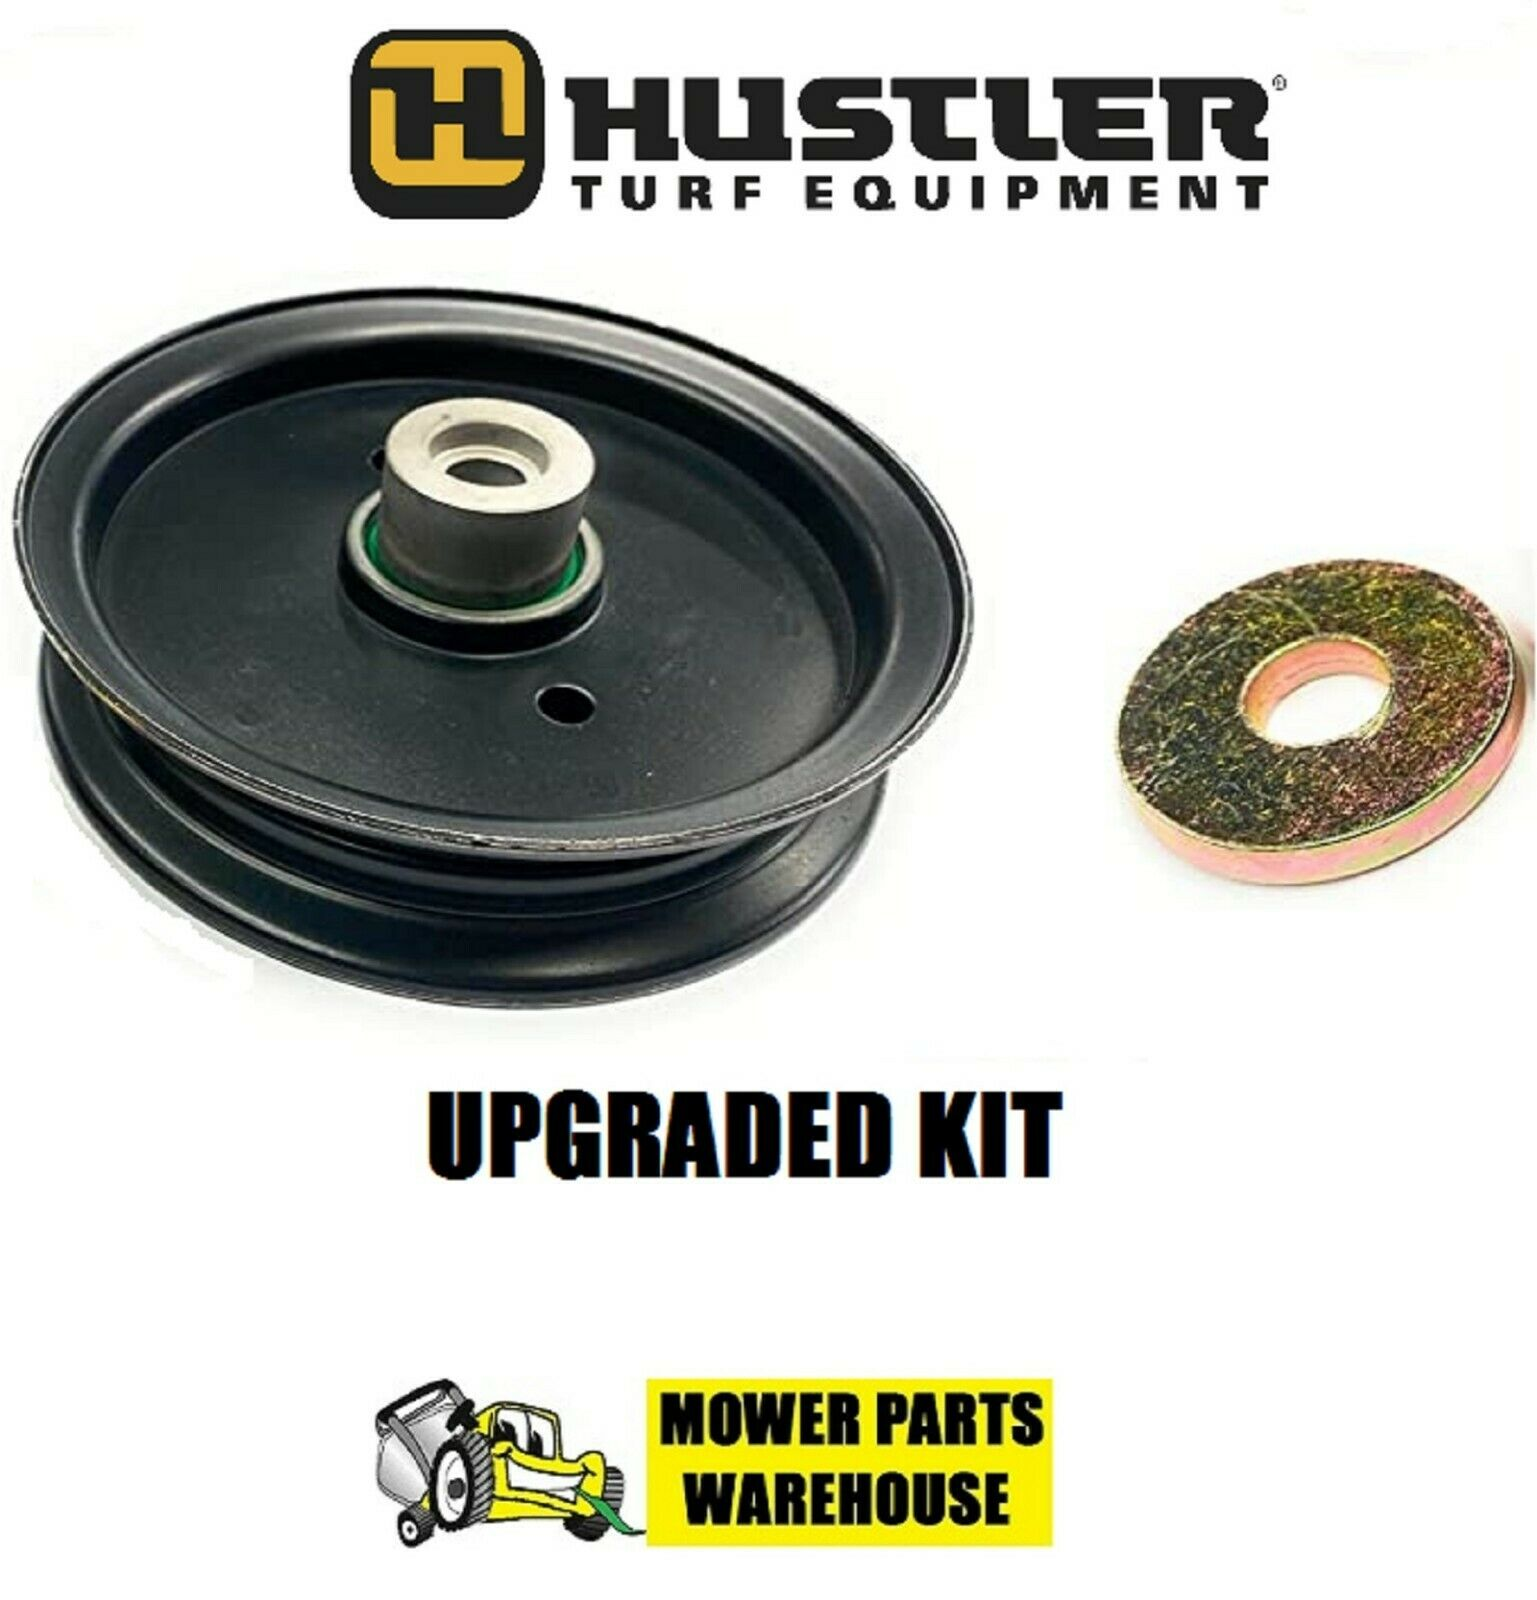 Hustler Mower Deck Idler Pulley replaces 604219 4/'/' outside diameter Raptor Deck